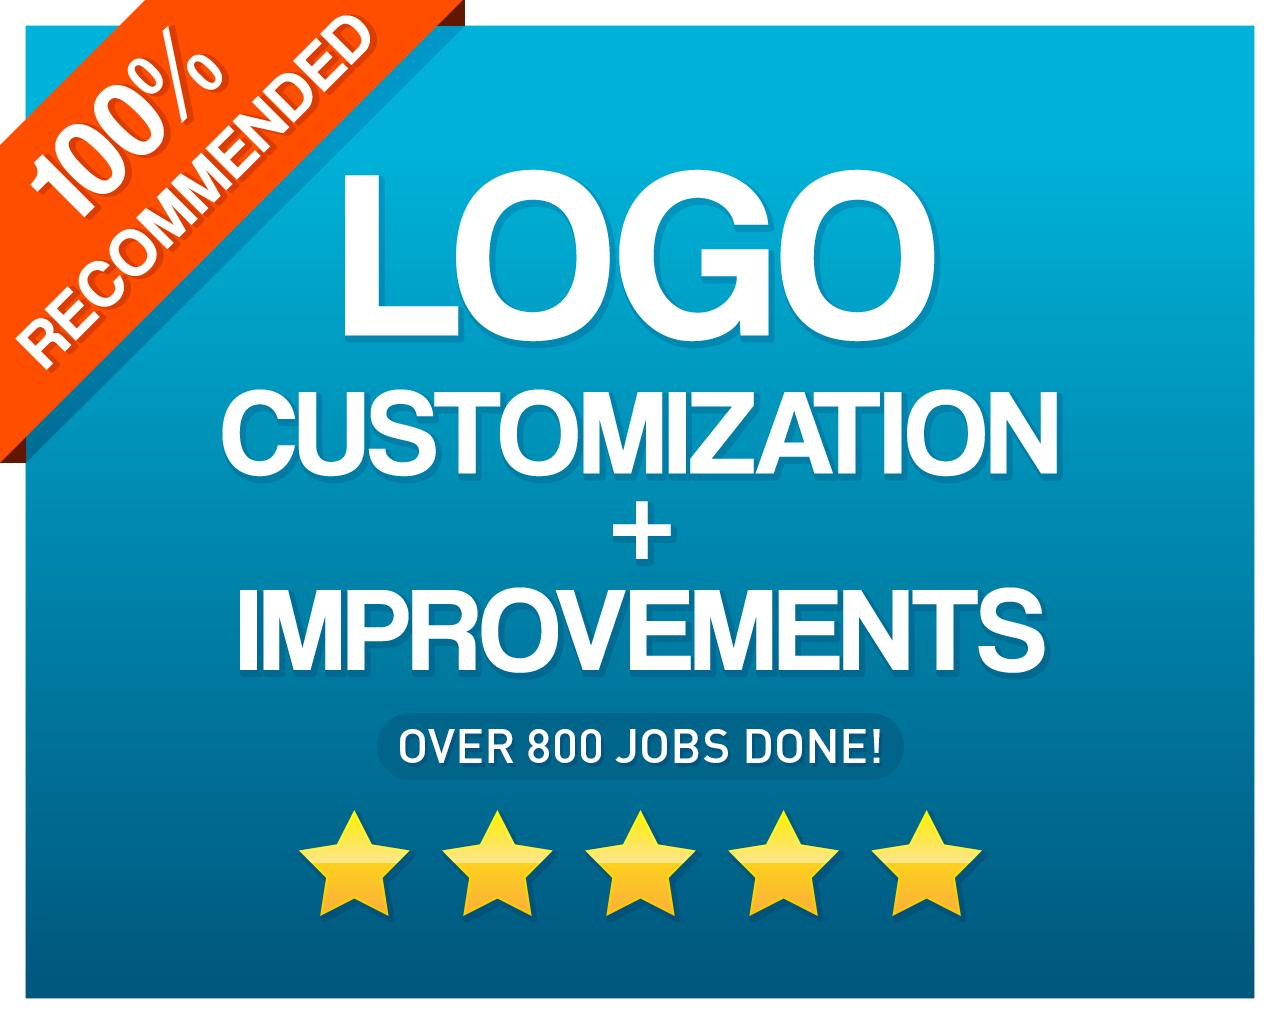 Logo Customization + Improvements by CvLd_Design - 105593